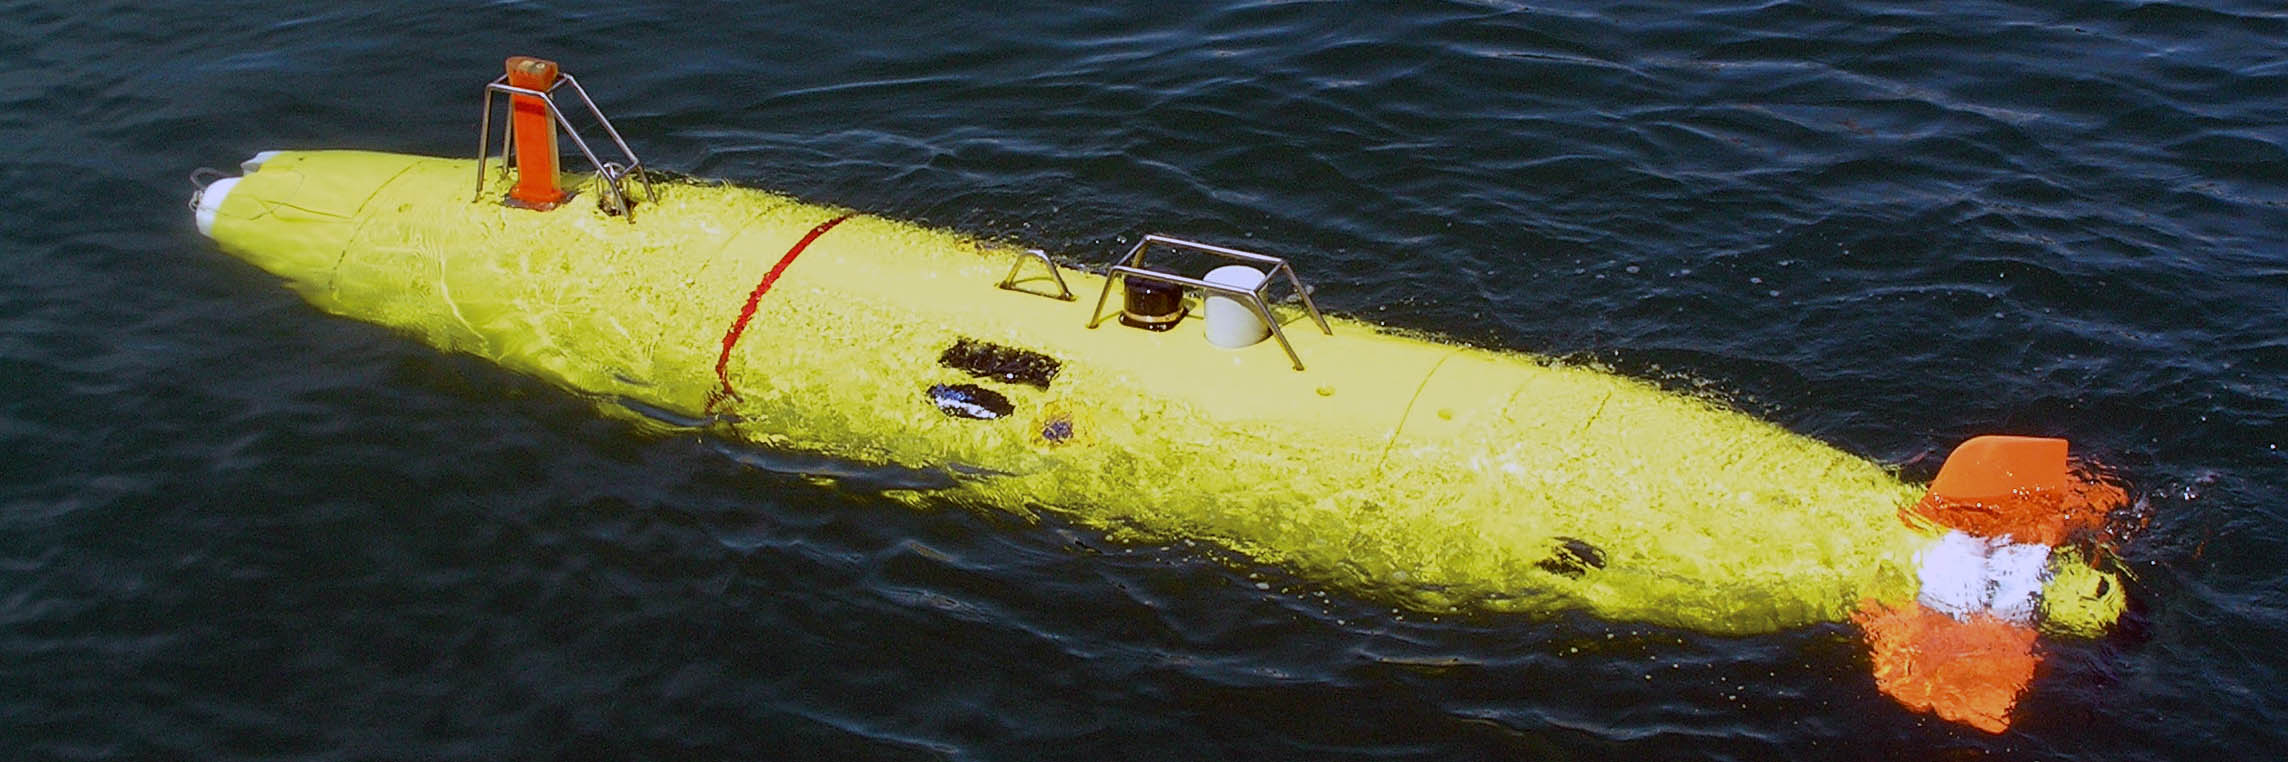 REMUS-6000-in-water_c Kongsberg_web